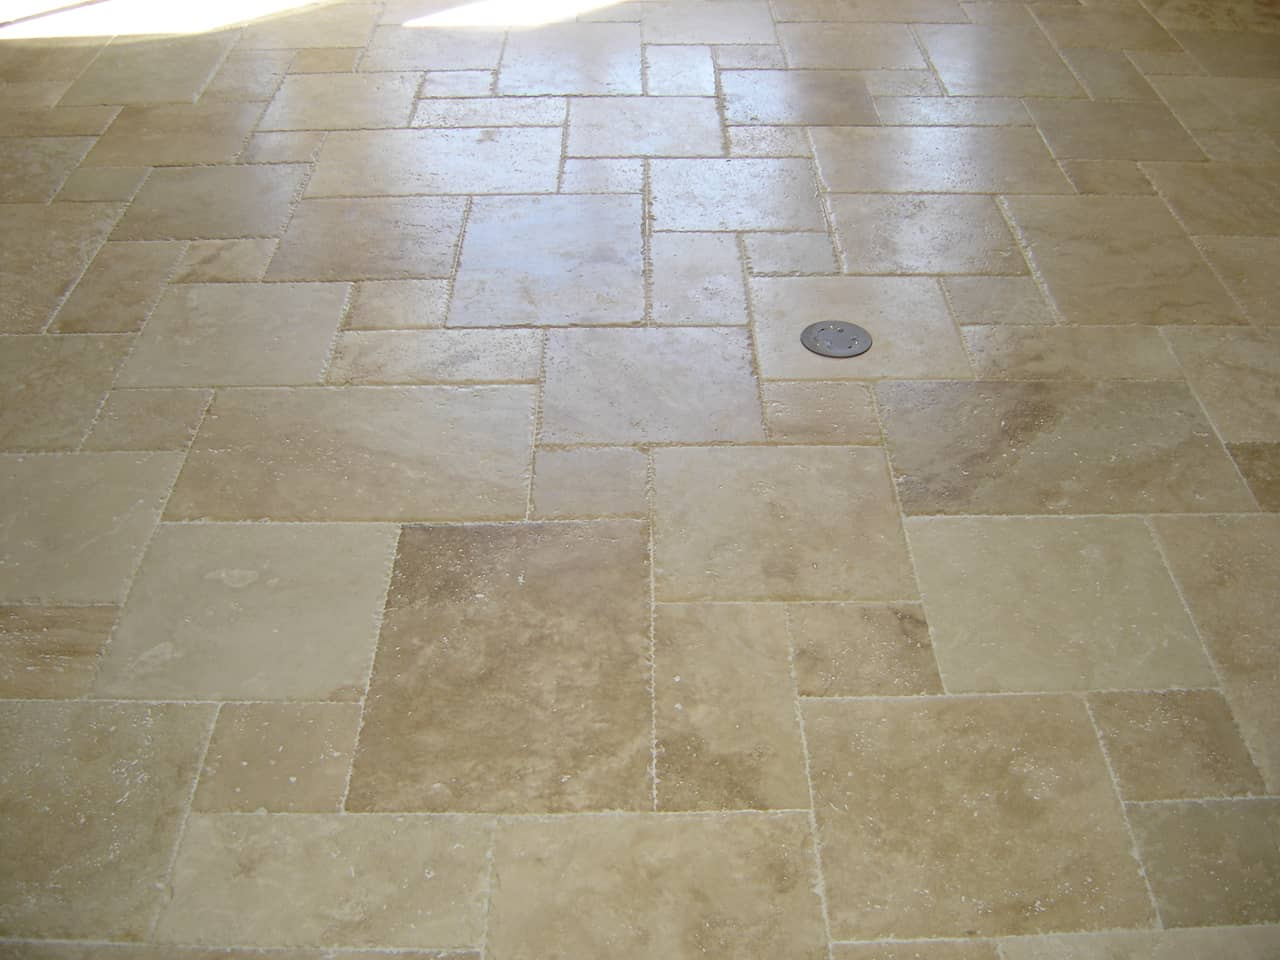 Travertine floor tiles picture contemporary tile design ideas travertine floor tiles picture dailygadgetfo Gallery